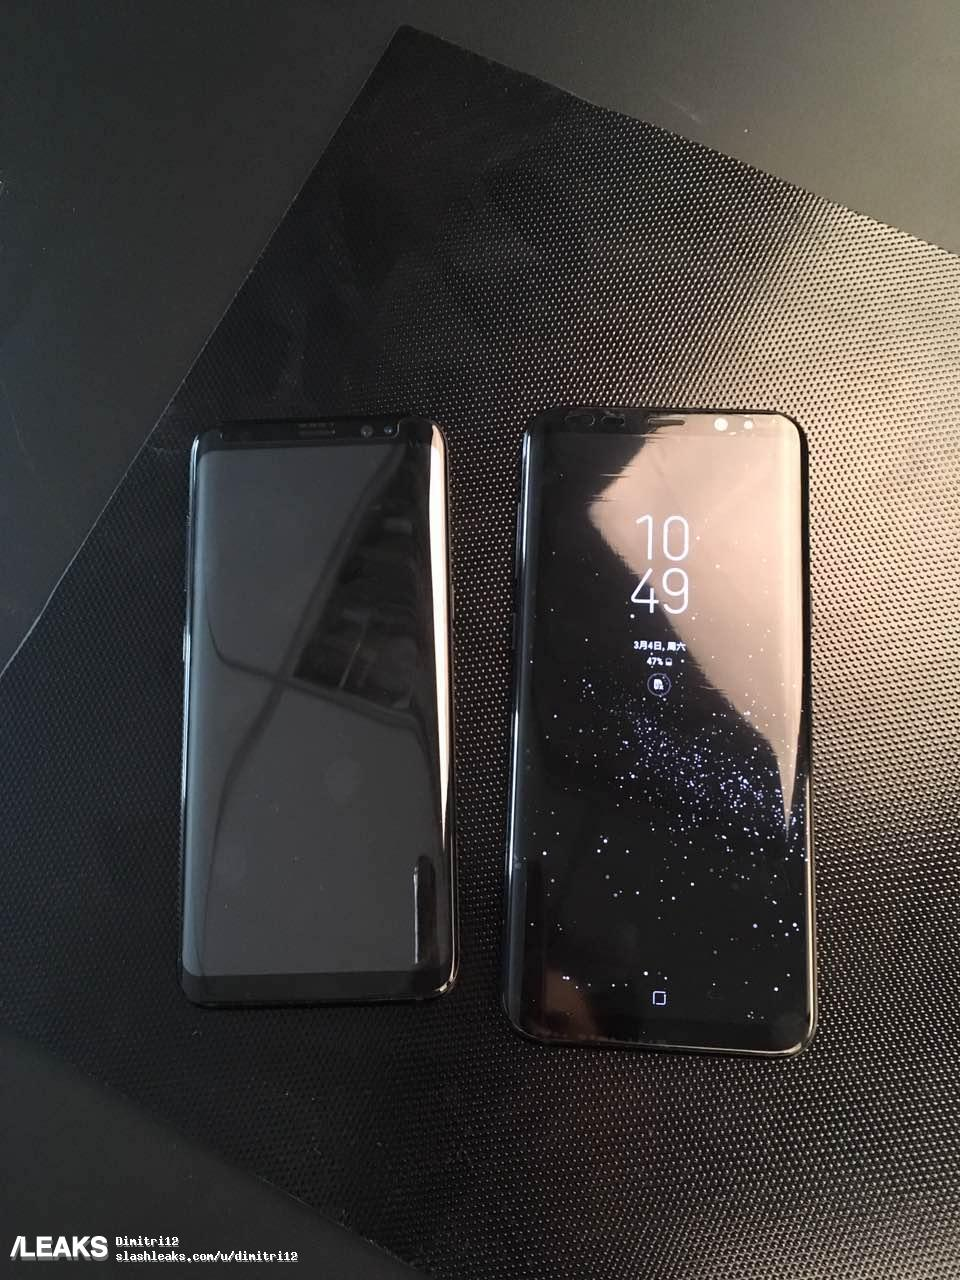 Samsung Galaxy S8 and Galaxy S8 Plus